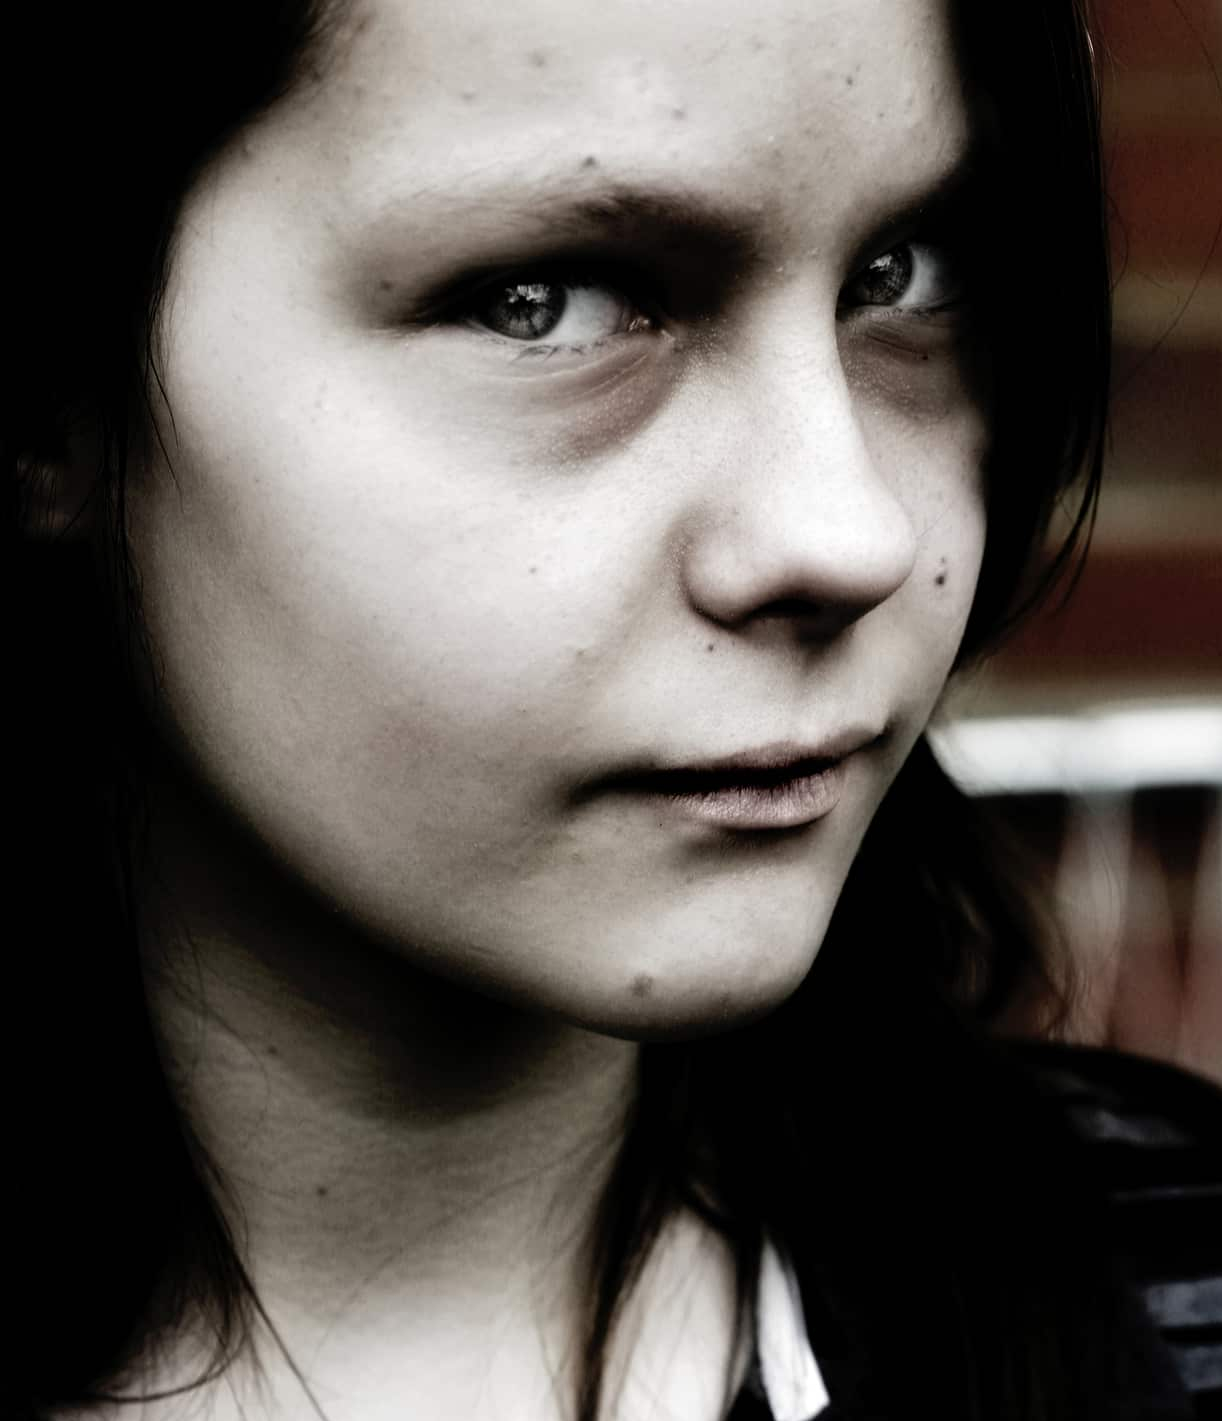 Younger woman facing camera with head turned slightly and expression of warning or evil in eyes